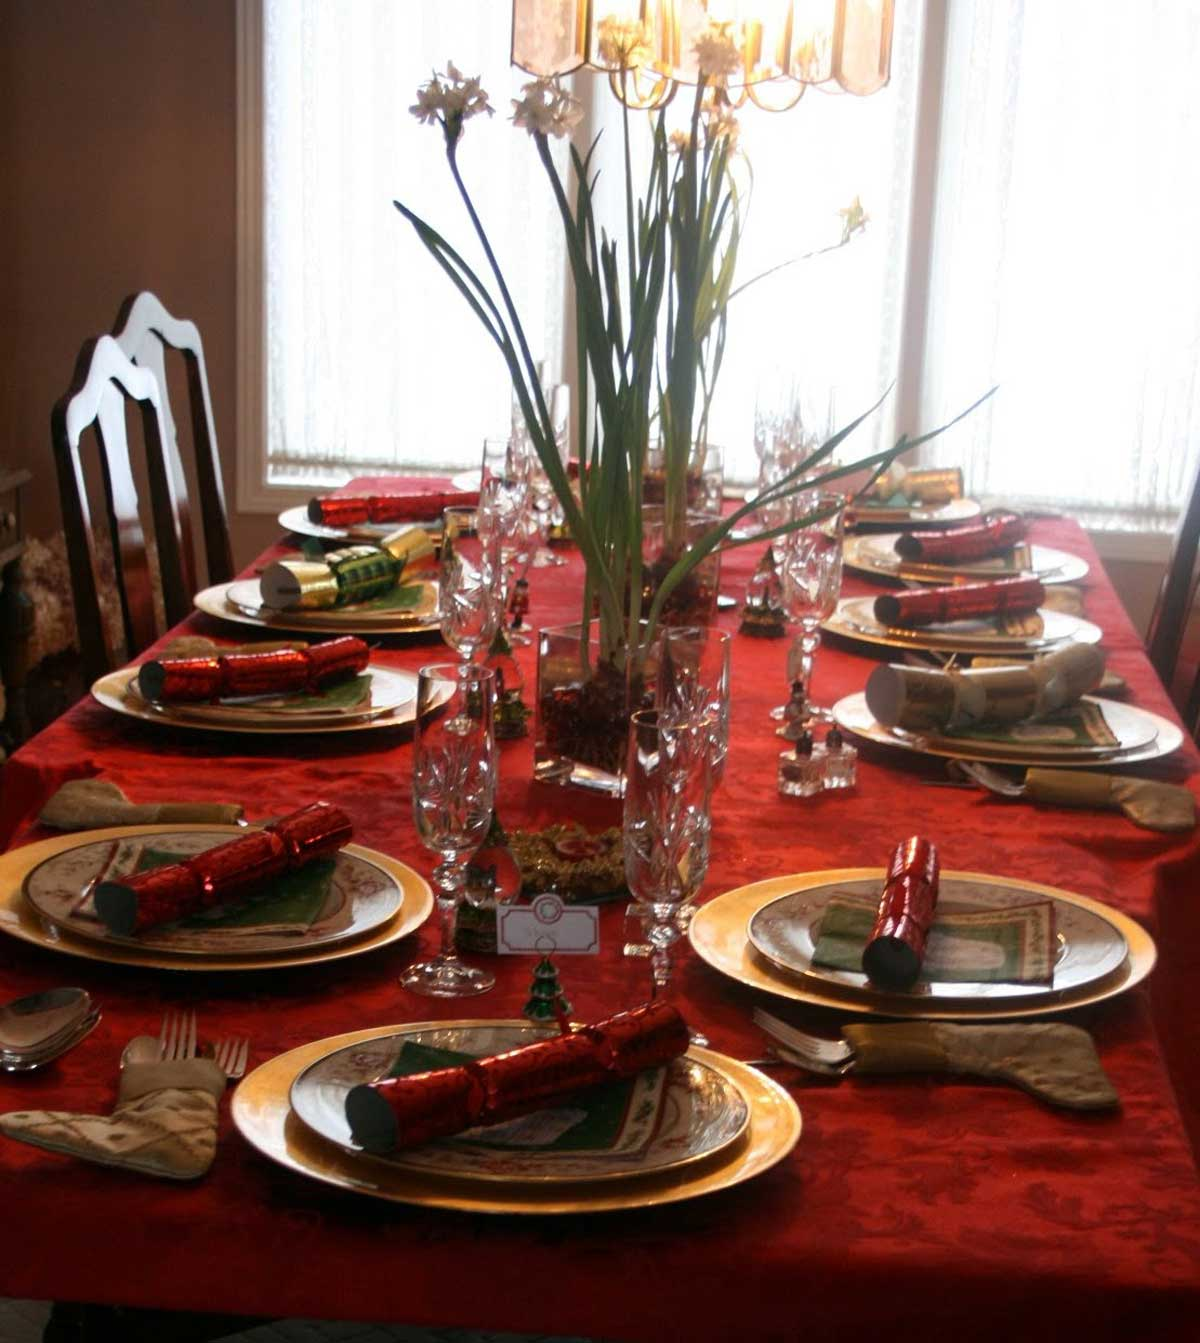 Decorating your dining table for Table centerpieces for dining table